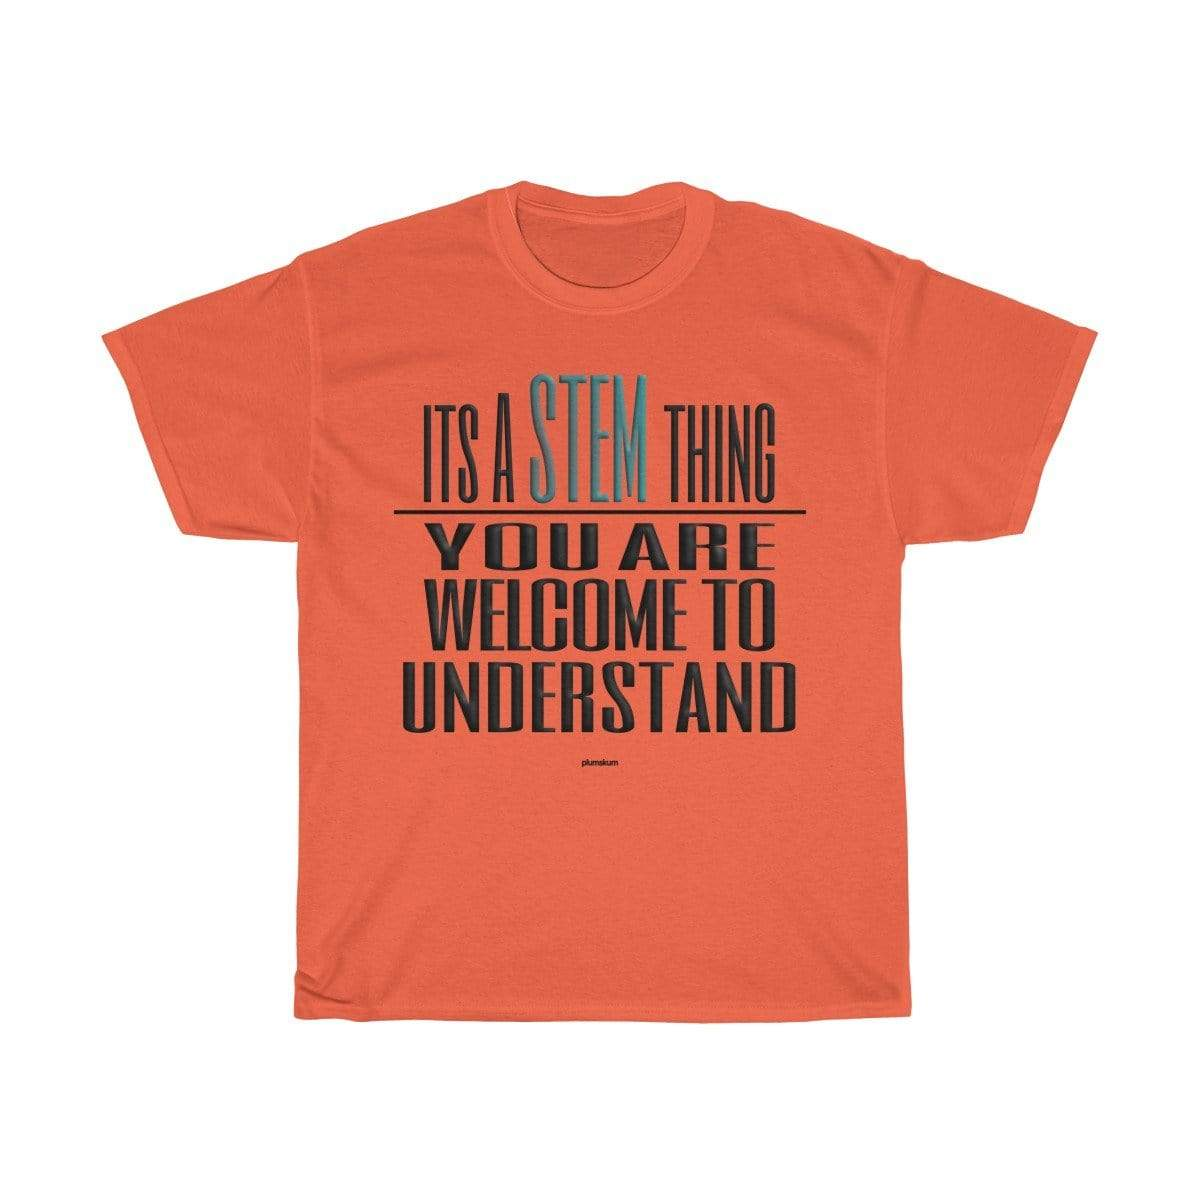 Plumskum T-Shirt Orange / S Understand STEM T-Shirt